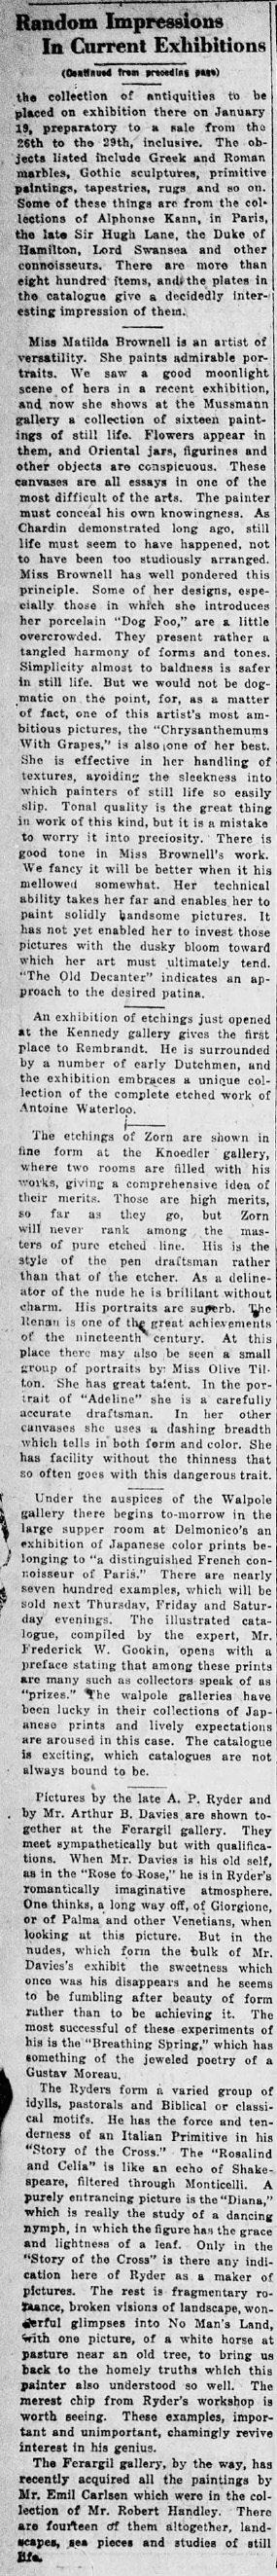 """New York Tribune, New York, NY, """"Random Impressions In Current Exhibitions"""", Sunday, January 16, 1921, First Edition, Page 40, not illustrated"""